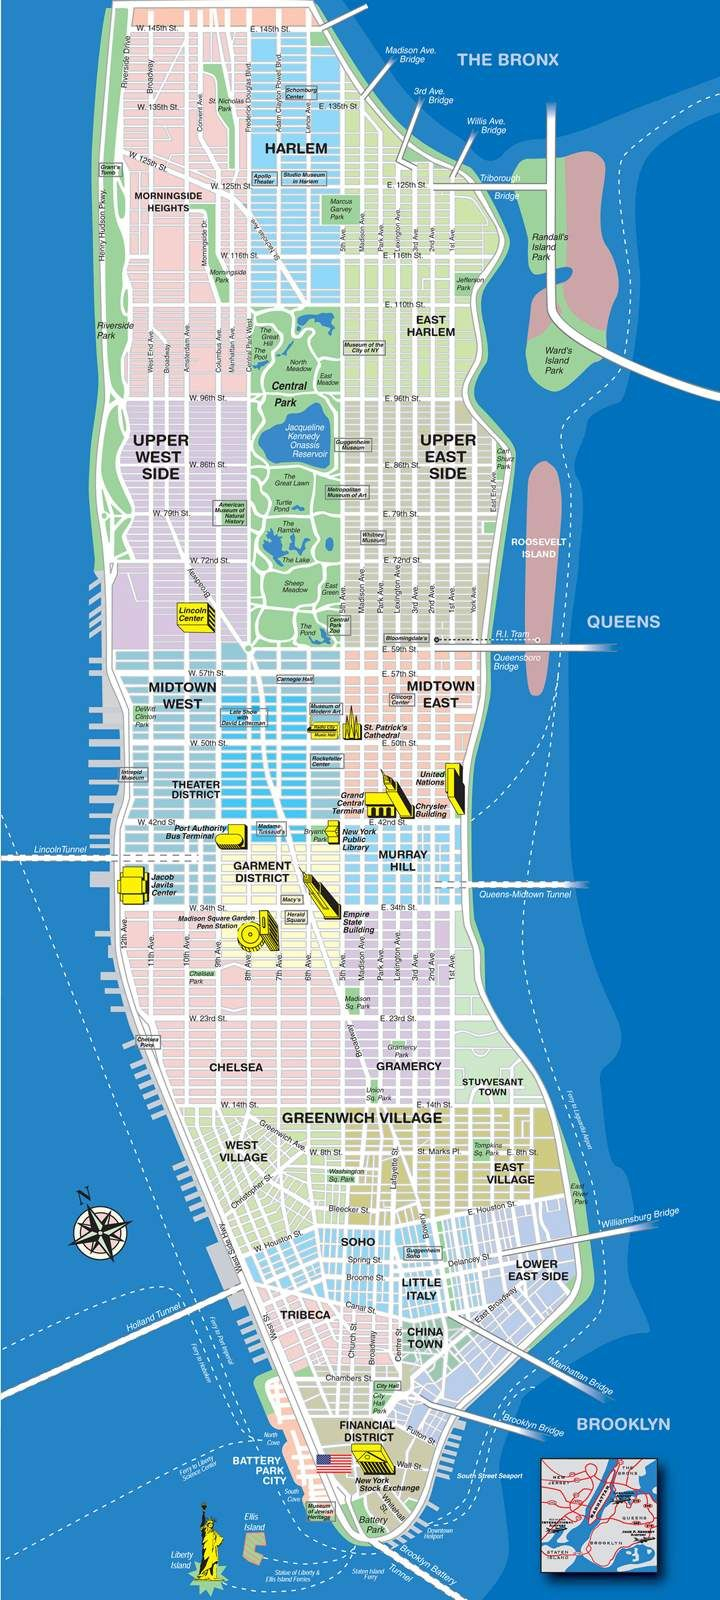 High-Resolution Map Of Manhattan For Print Or Download | Usa Travel - Map Of Manhattan Nyc Printable